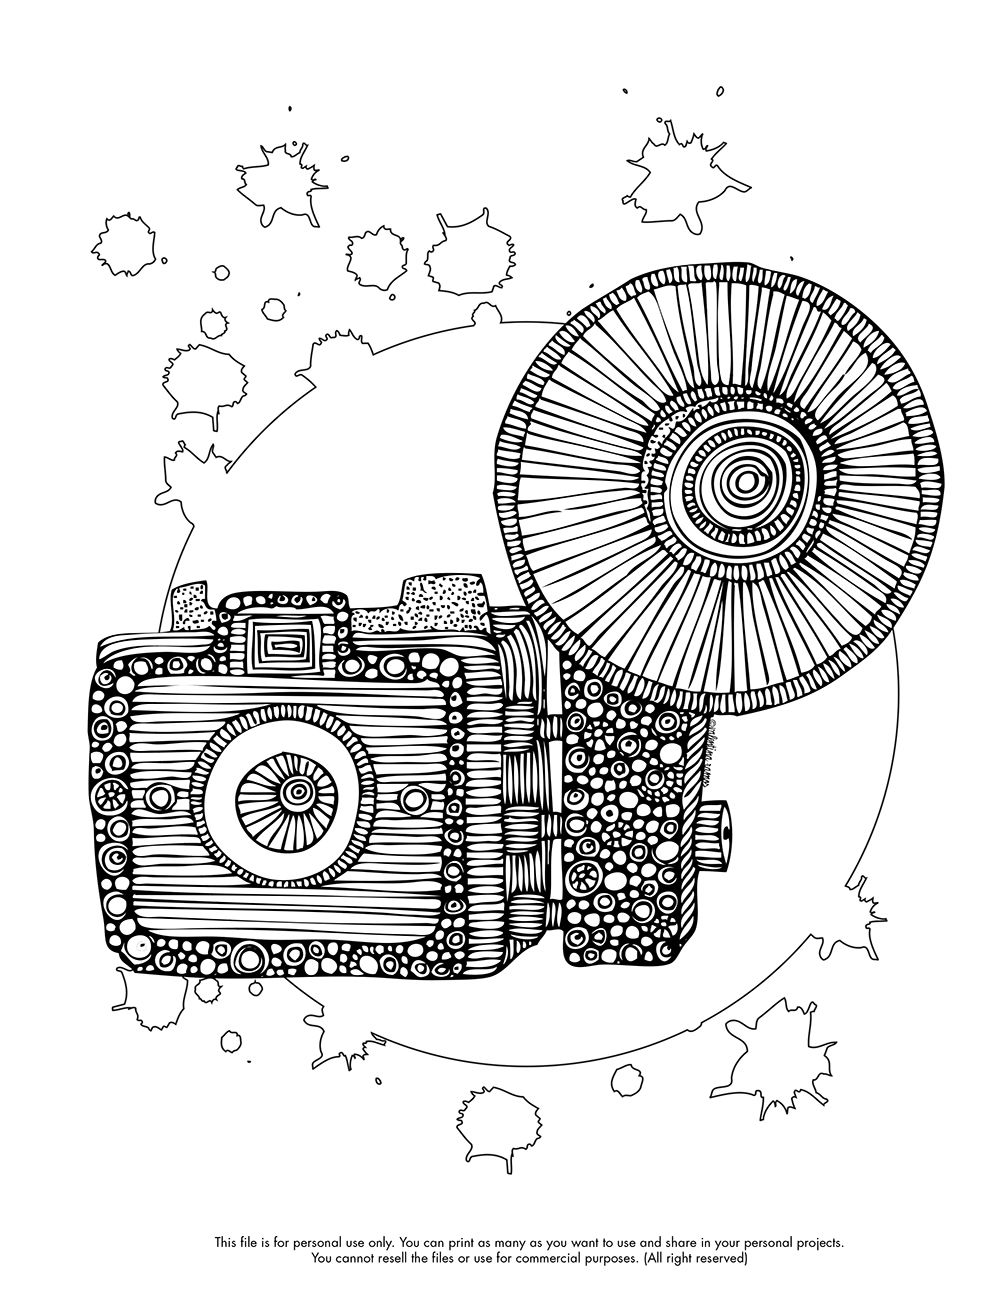 Happy Coloring Monday! Here you free coloring page: http